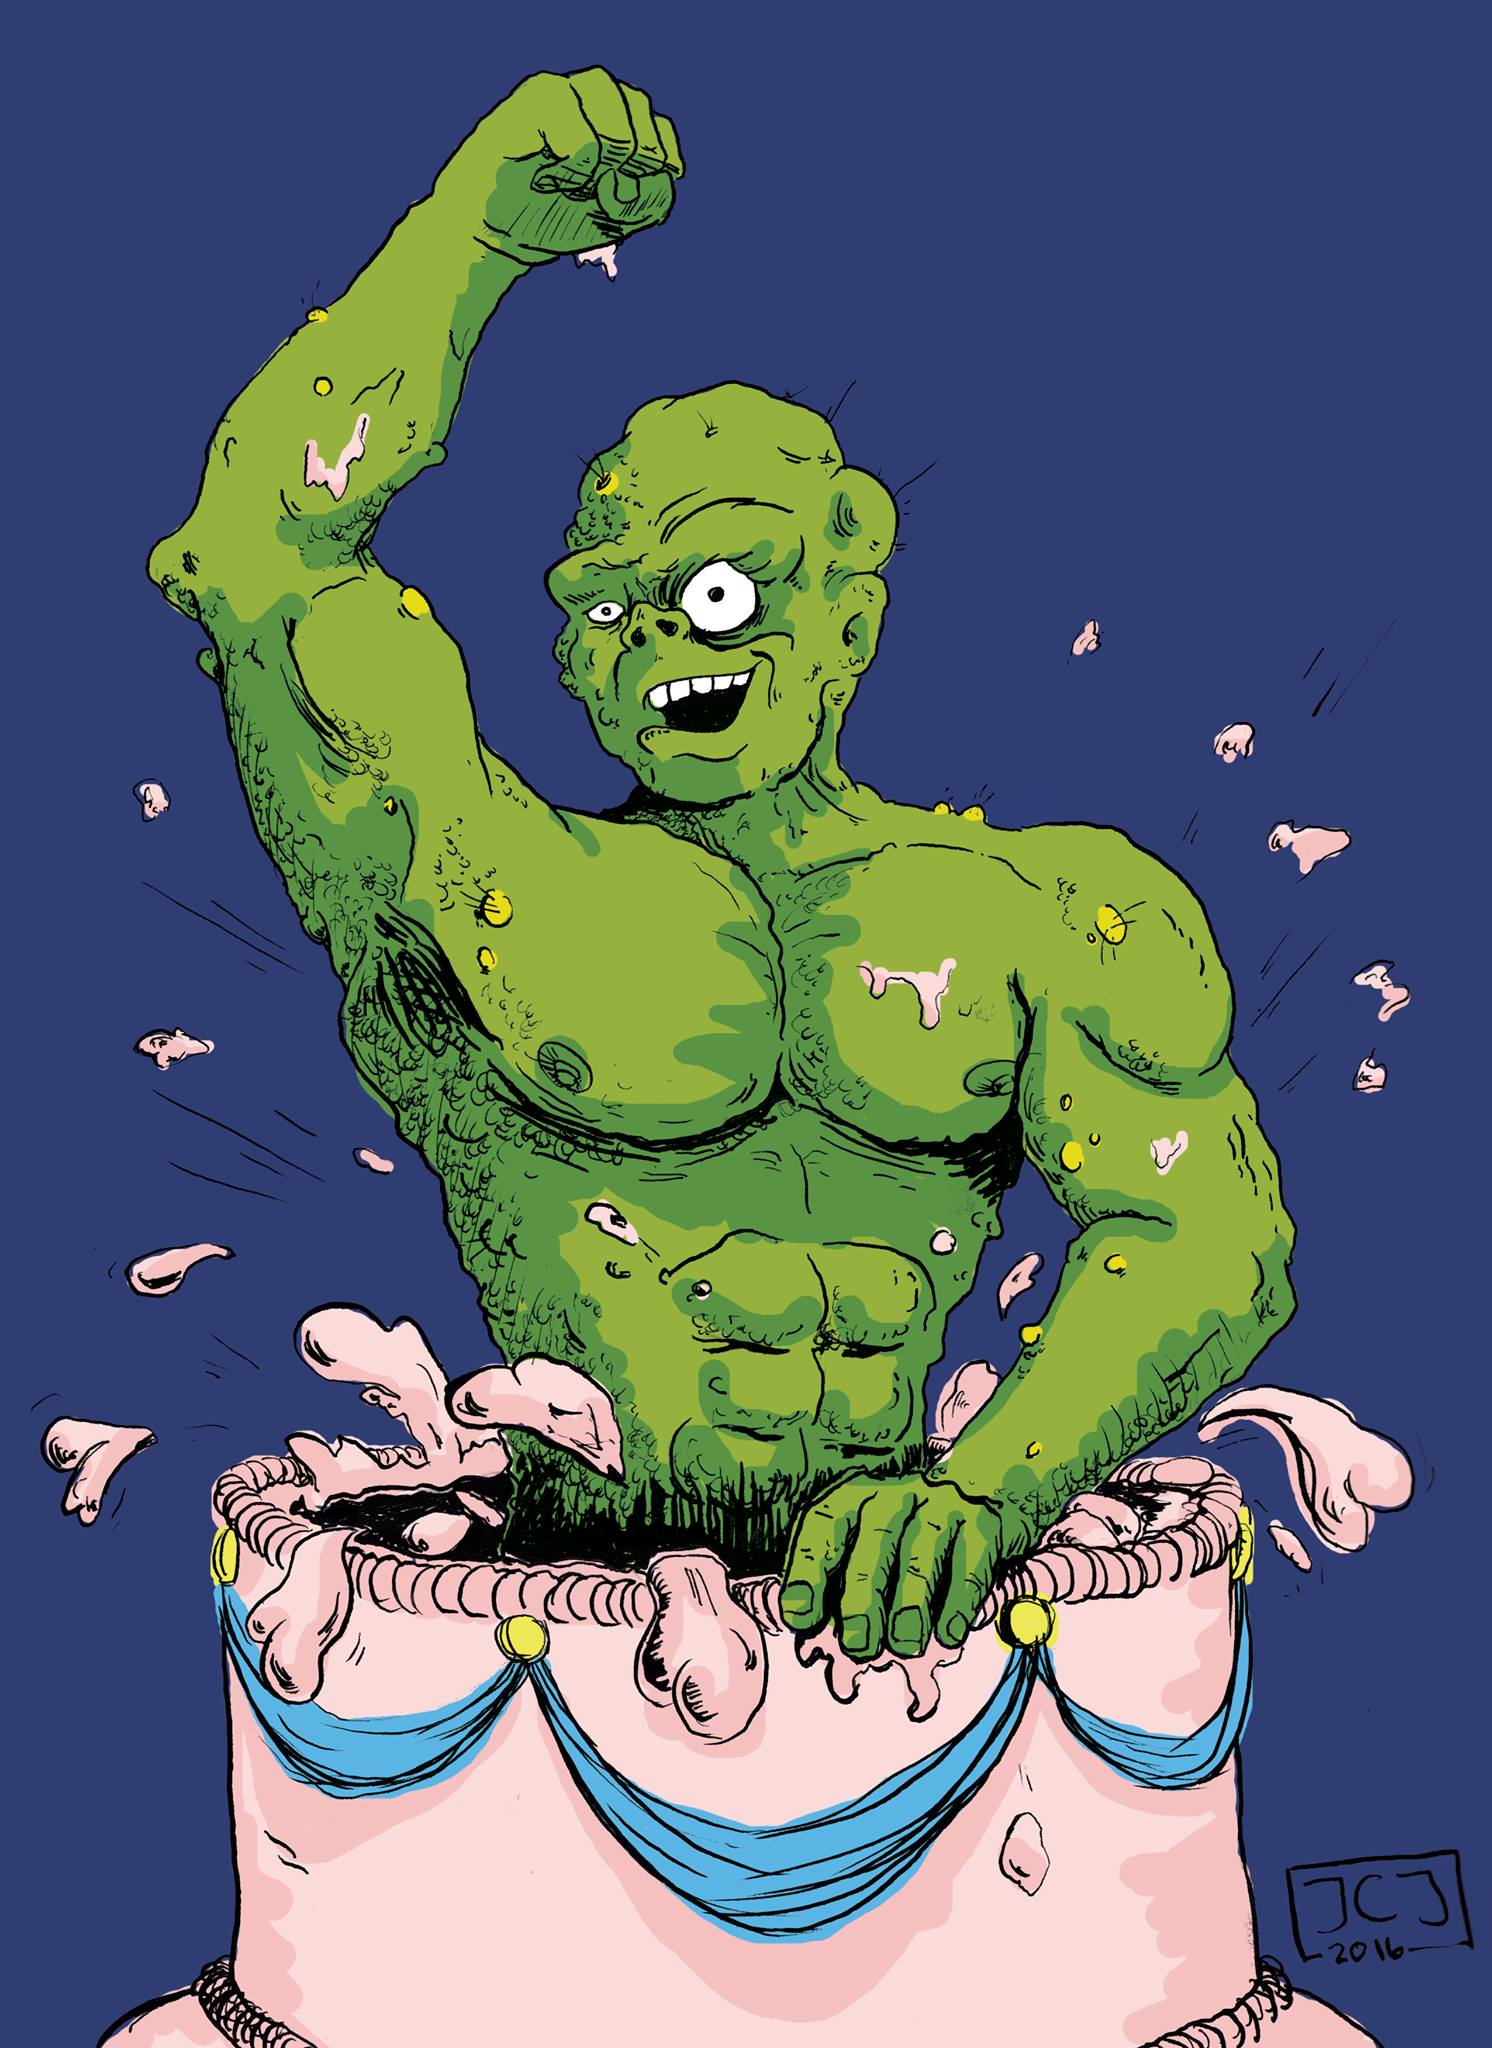 Toxie by John Jennison